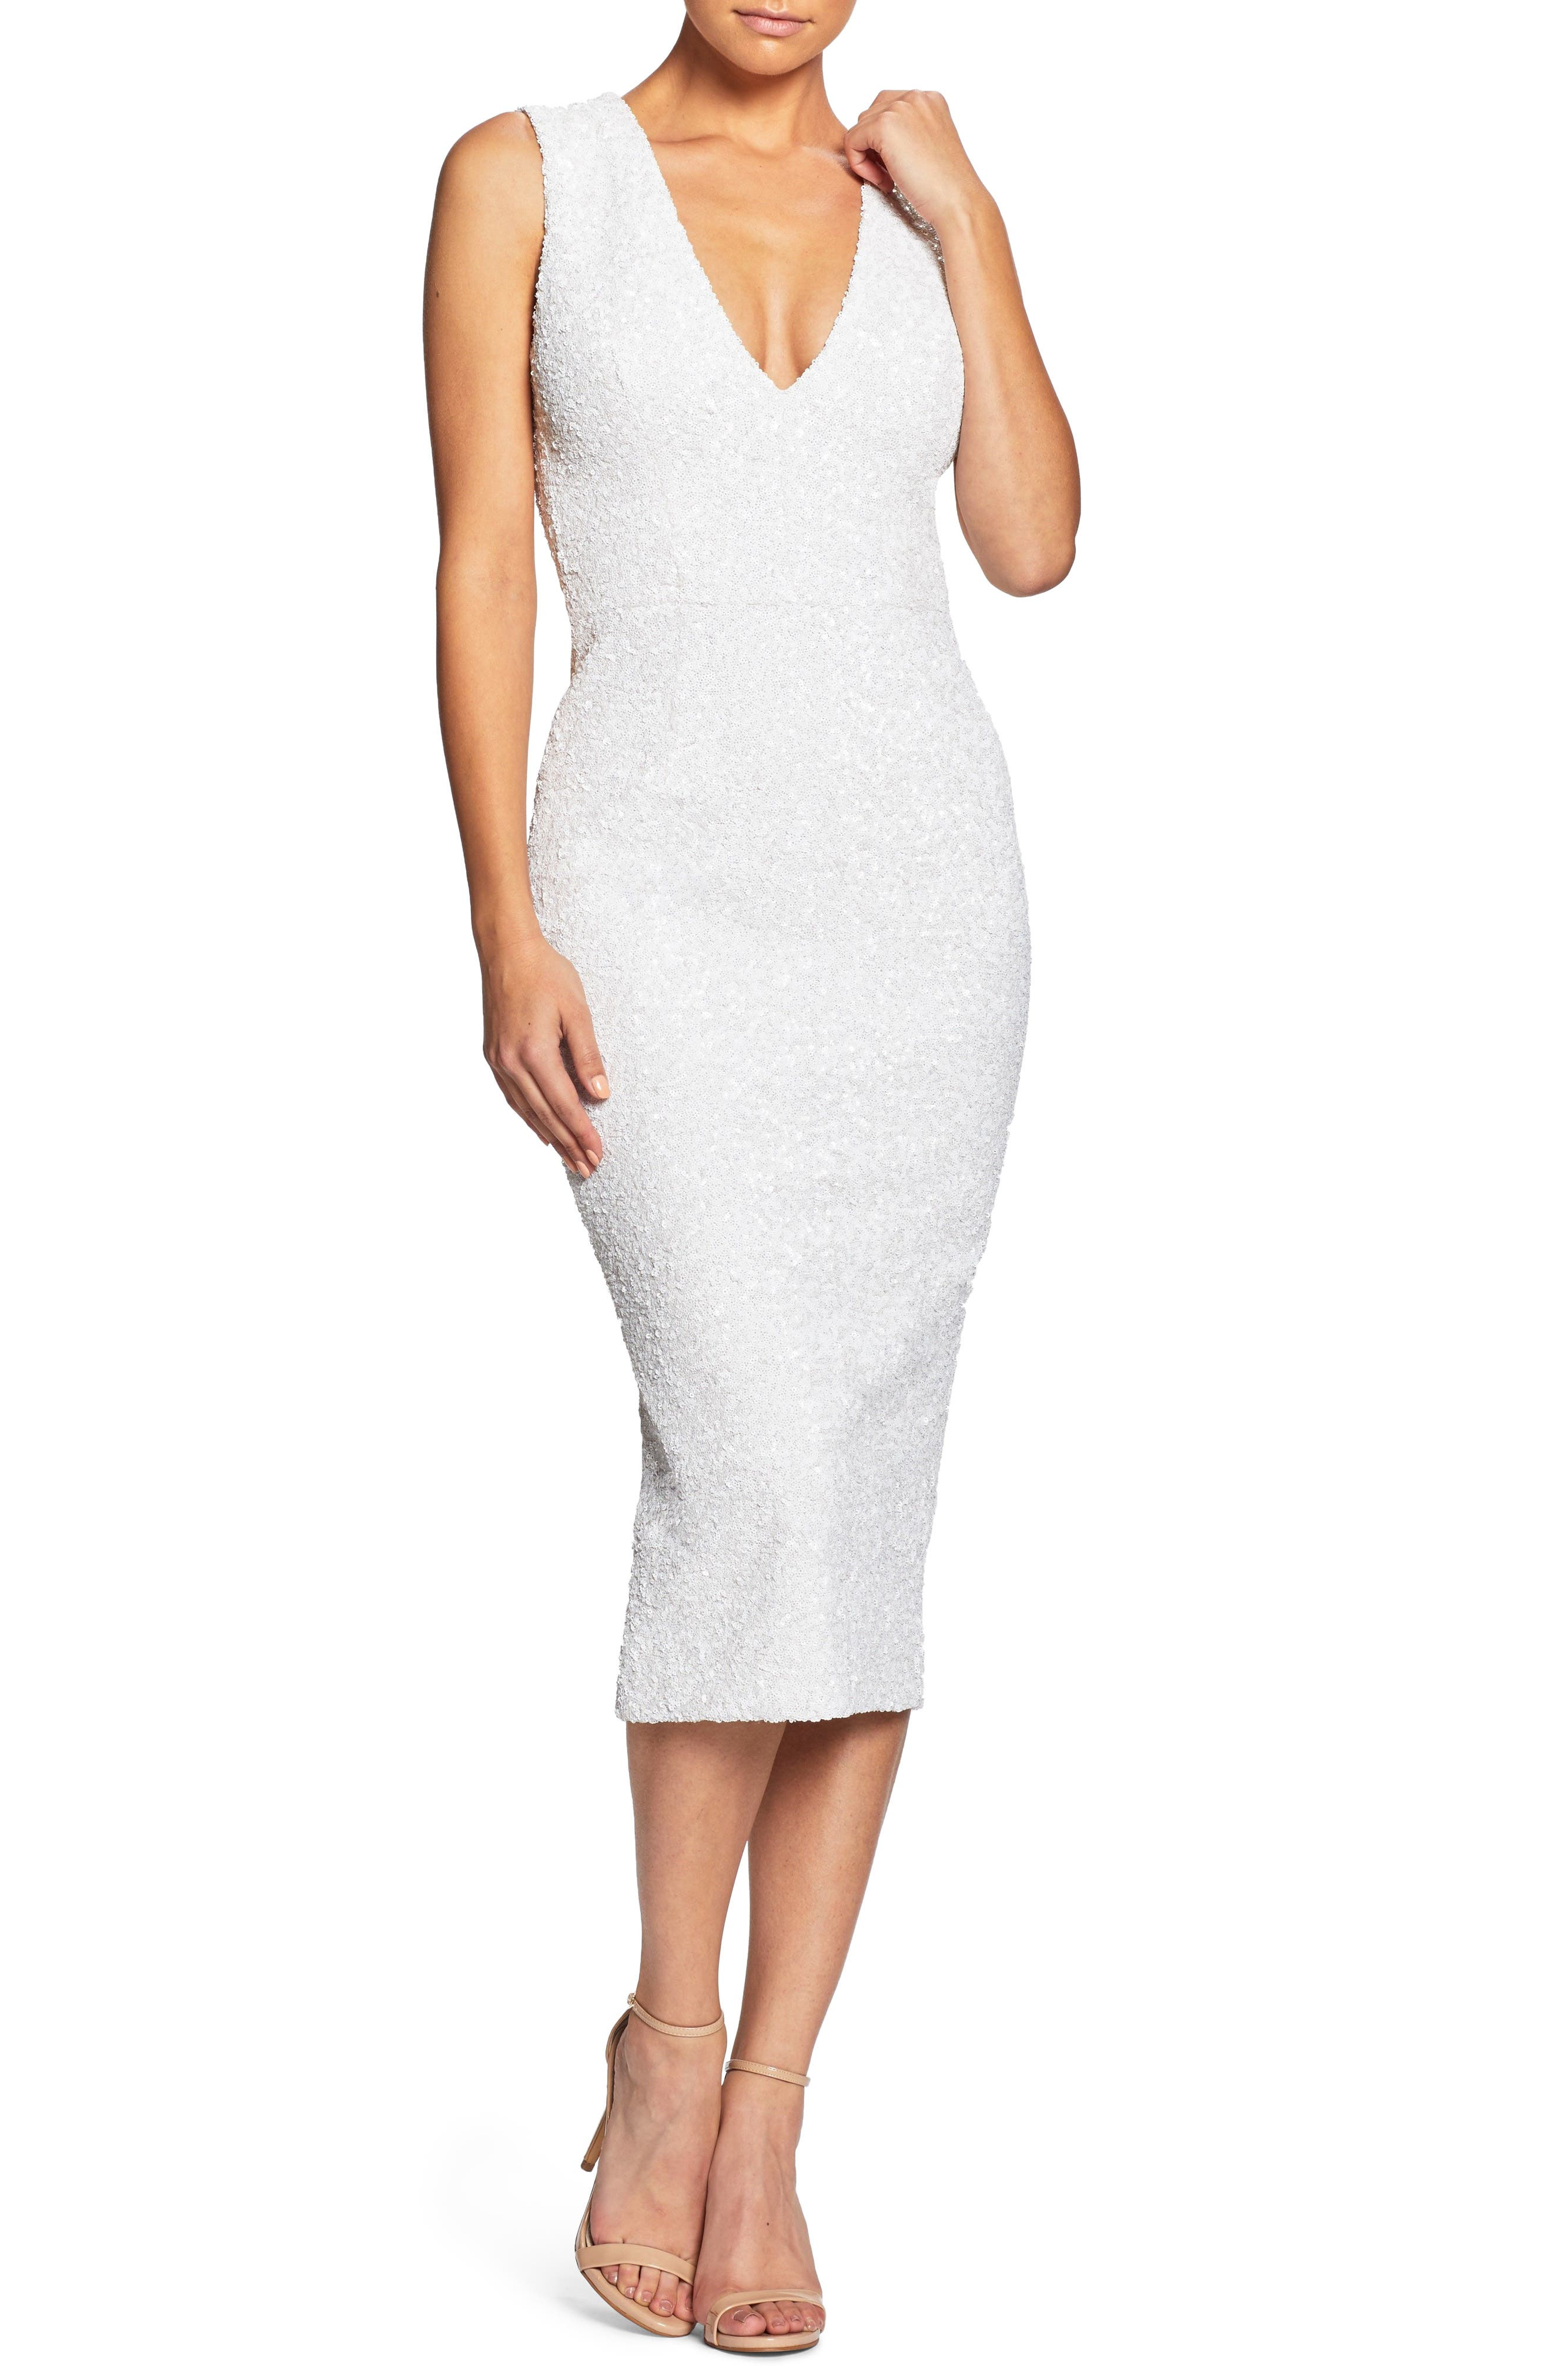 DRESS THE POPULATION Rani Open Back Sequin Dress in White